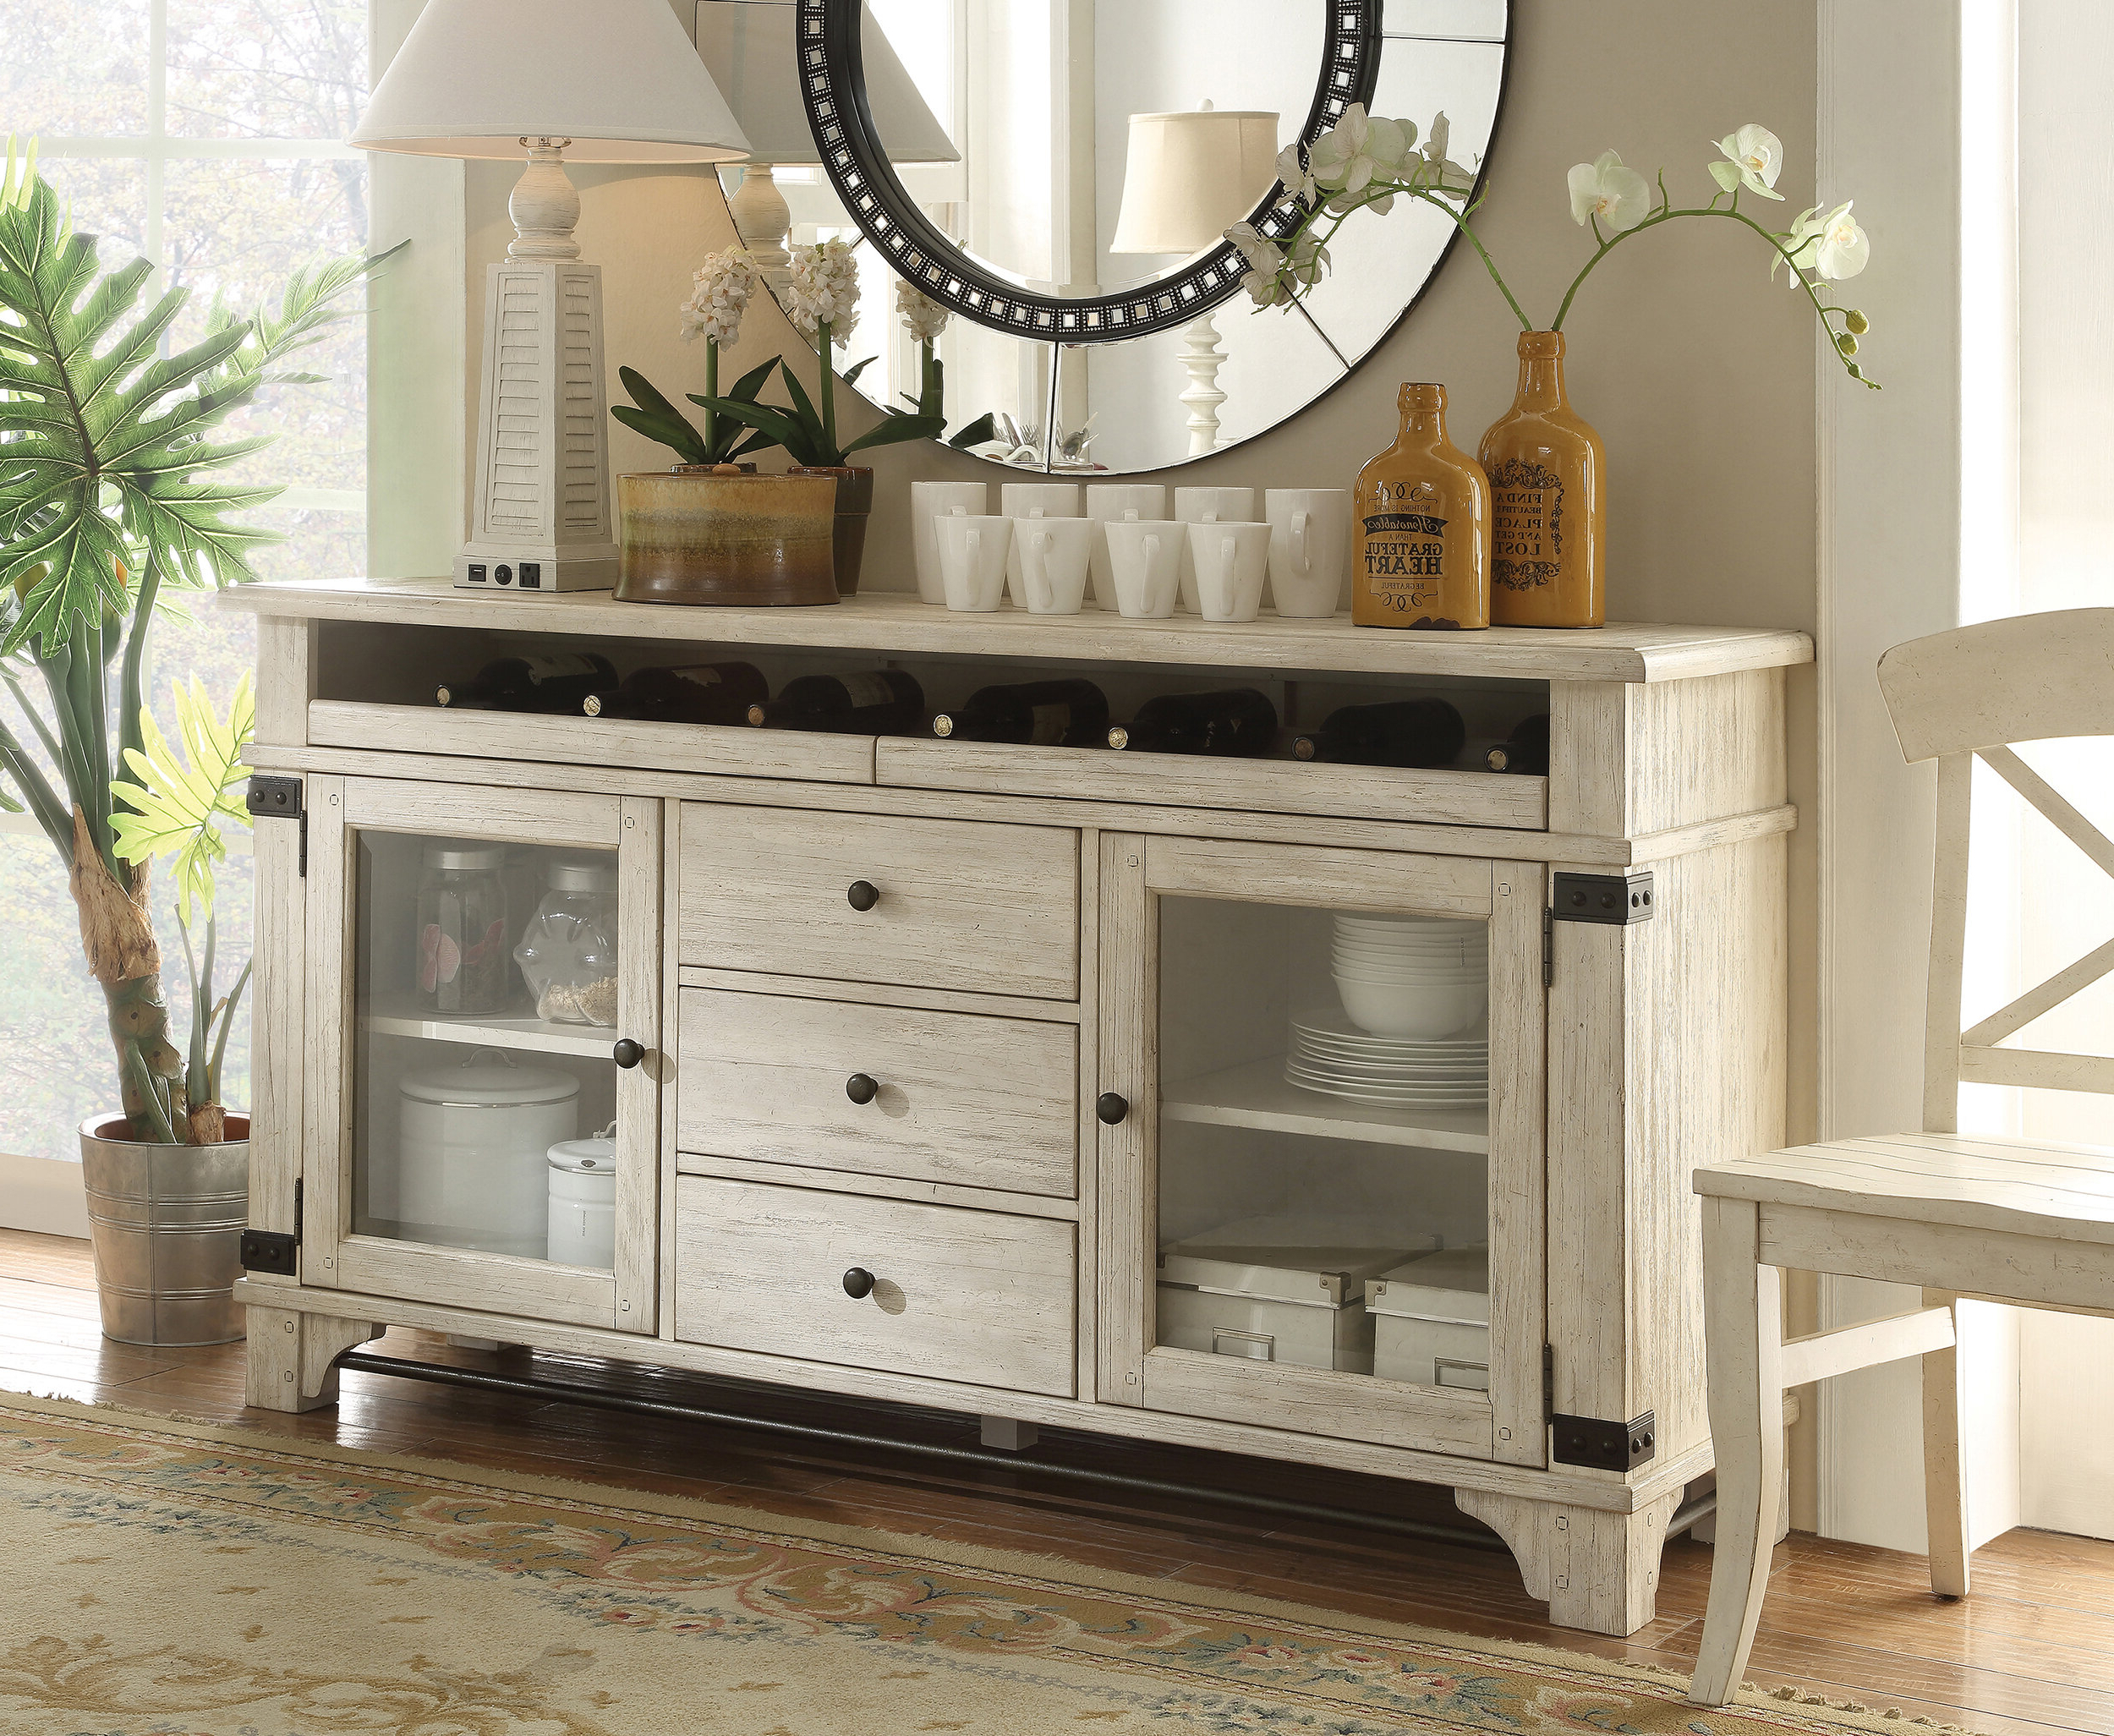 Most Popular Piedmont Charlisa Sideboard Pertaining To Chicoree Charlena Sideboards (View 14 of 20)